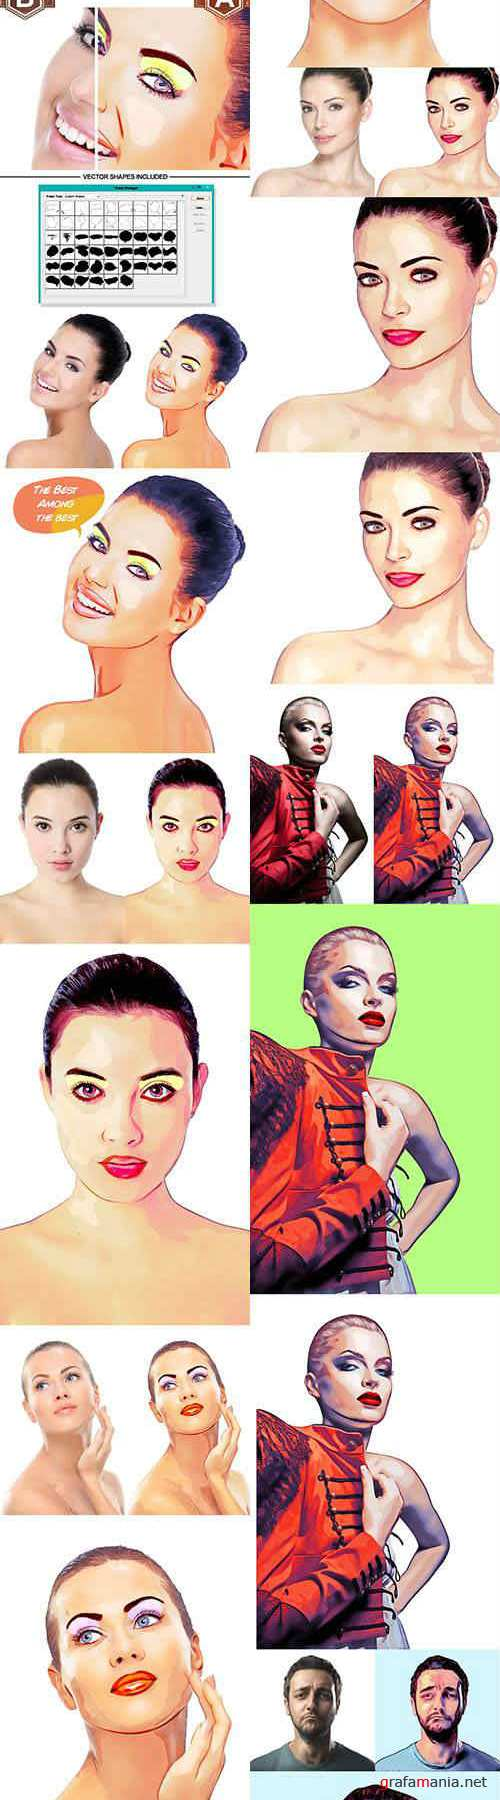 Advance Pop Art Kit 2 10248516 (Graphicriver)